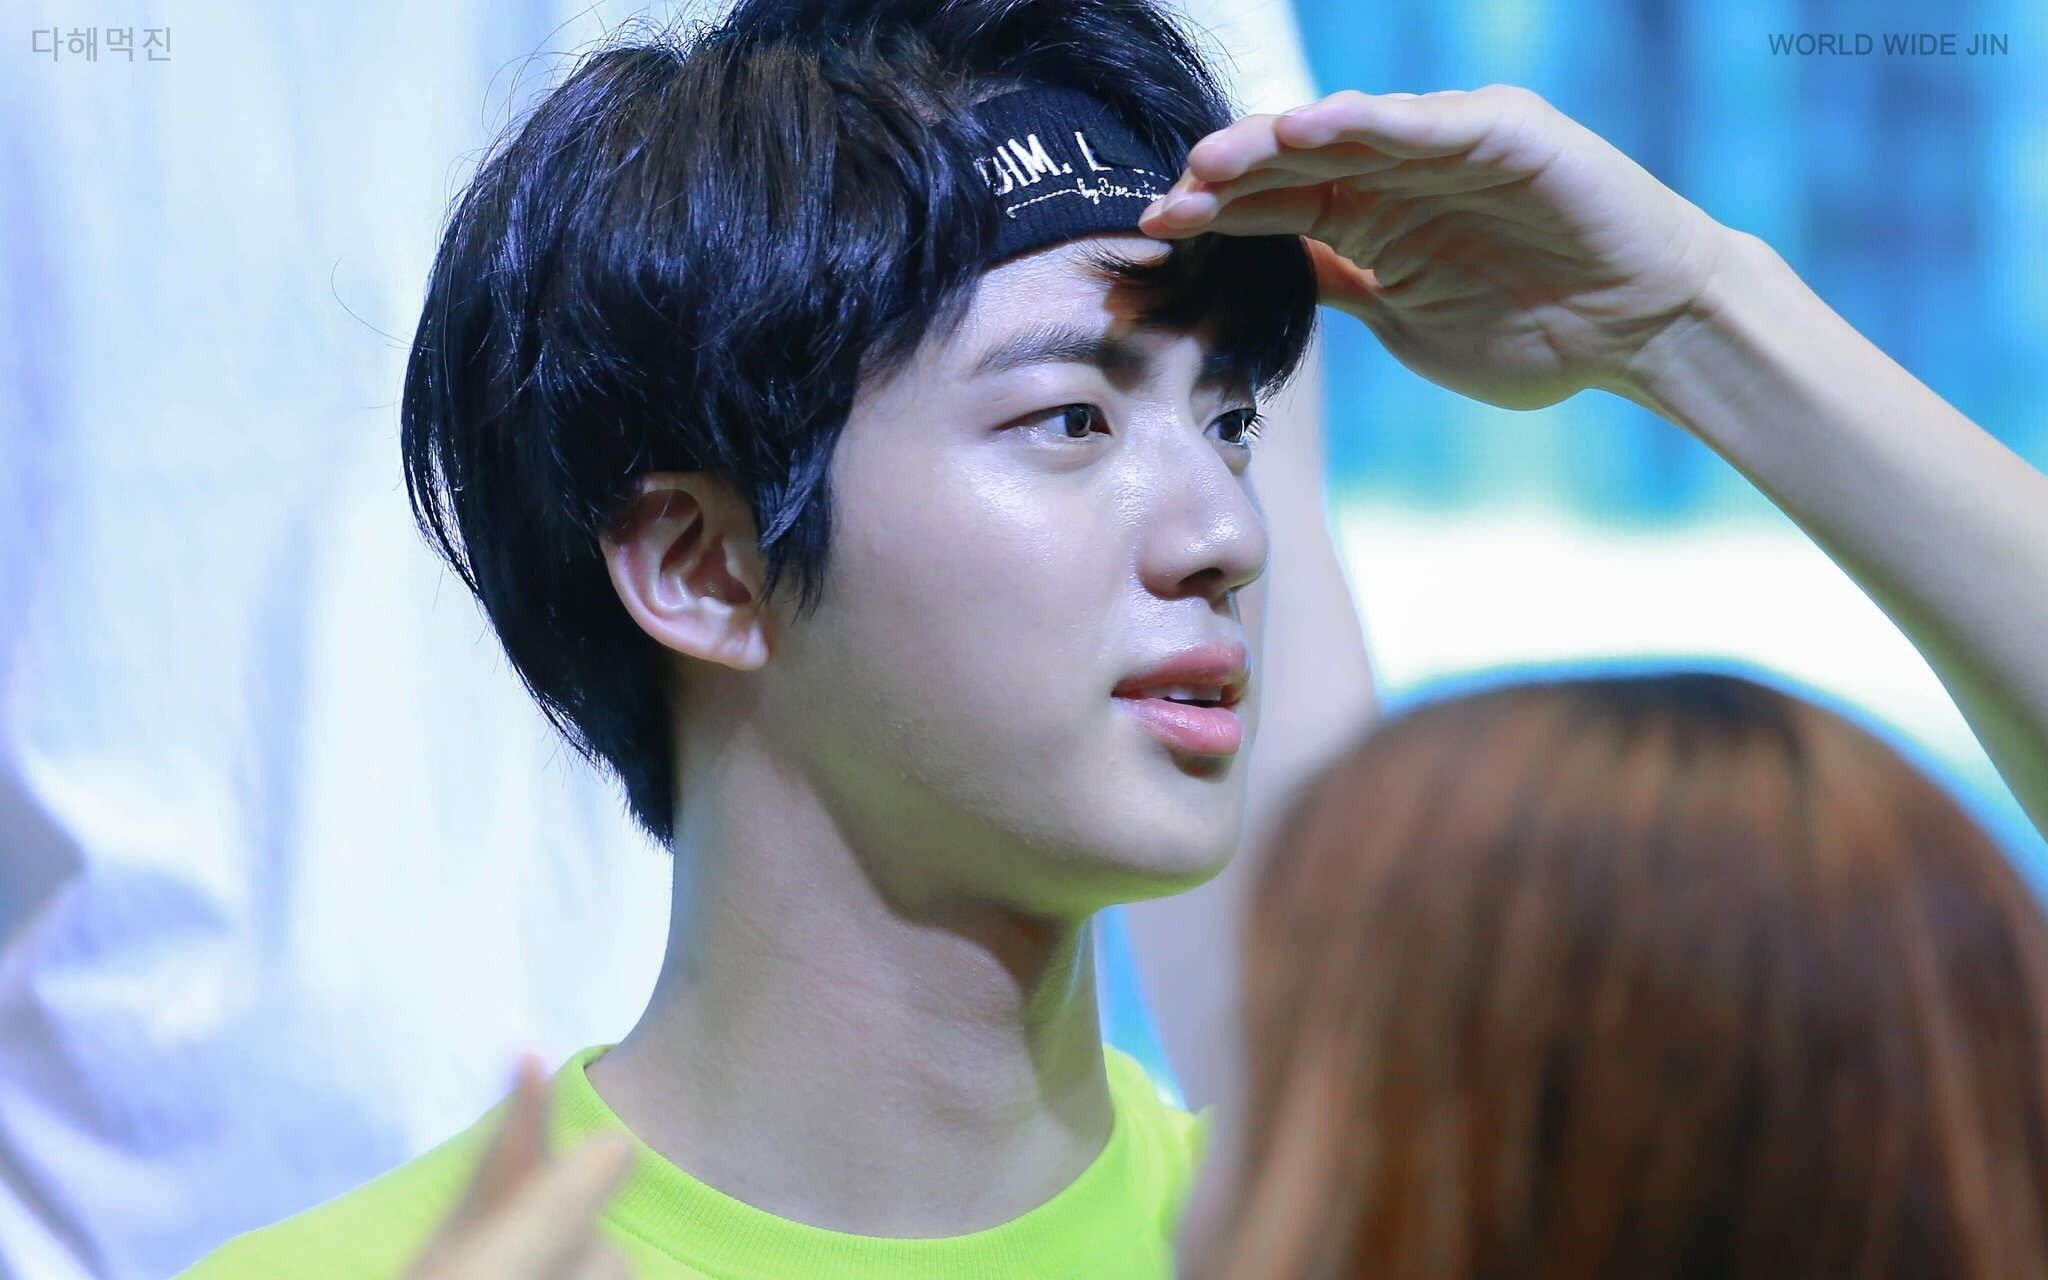 Pin by Eh. on '진' 김석진 'Jin' Kim Seokjin Worldwide